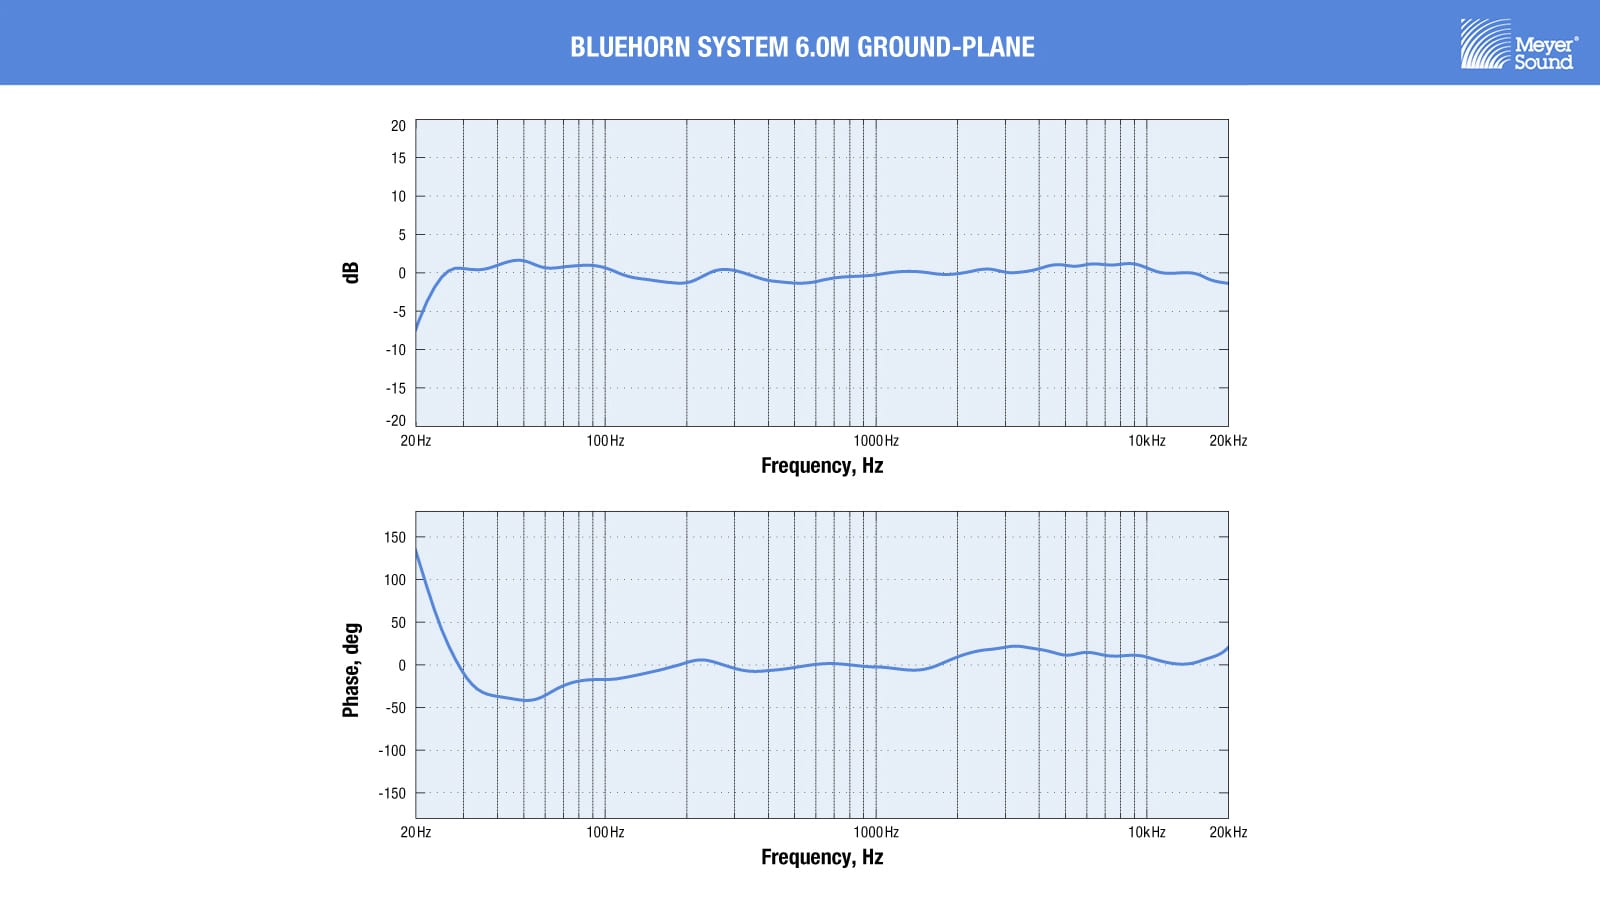 Measurement traces reveal Bluehorn System's flat frequency response and unprecedented phase linearity across the audible bandwidth.